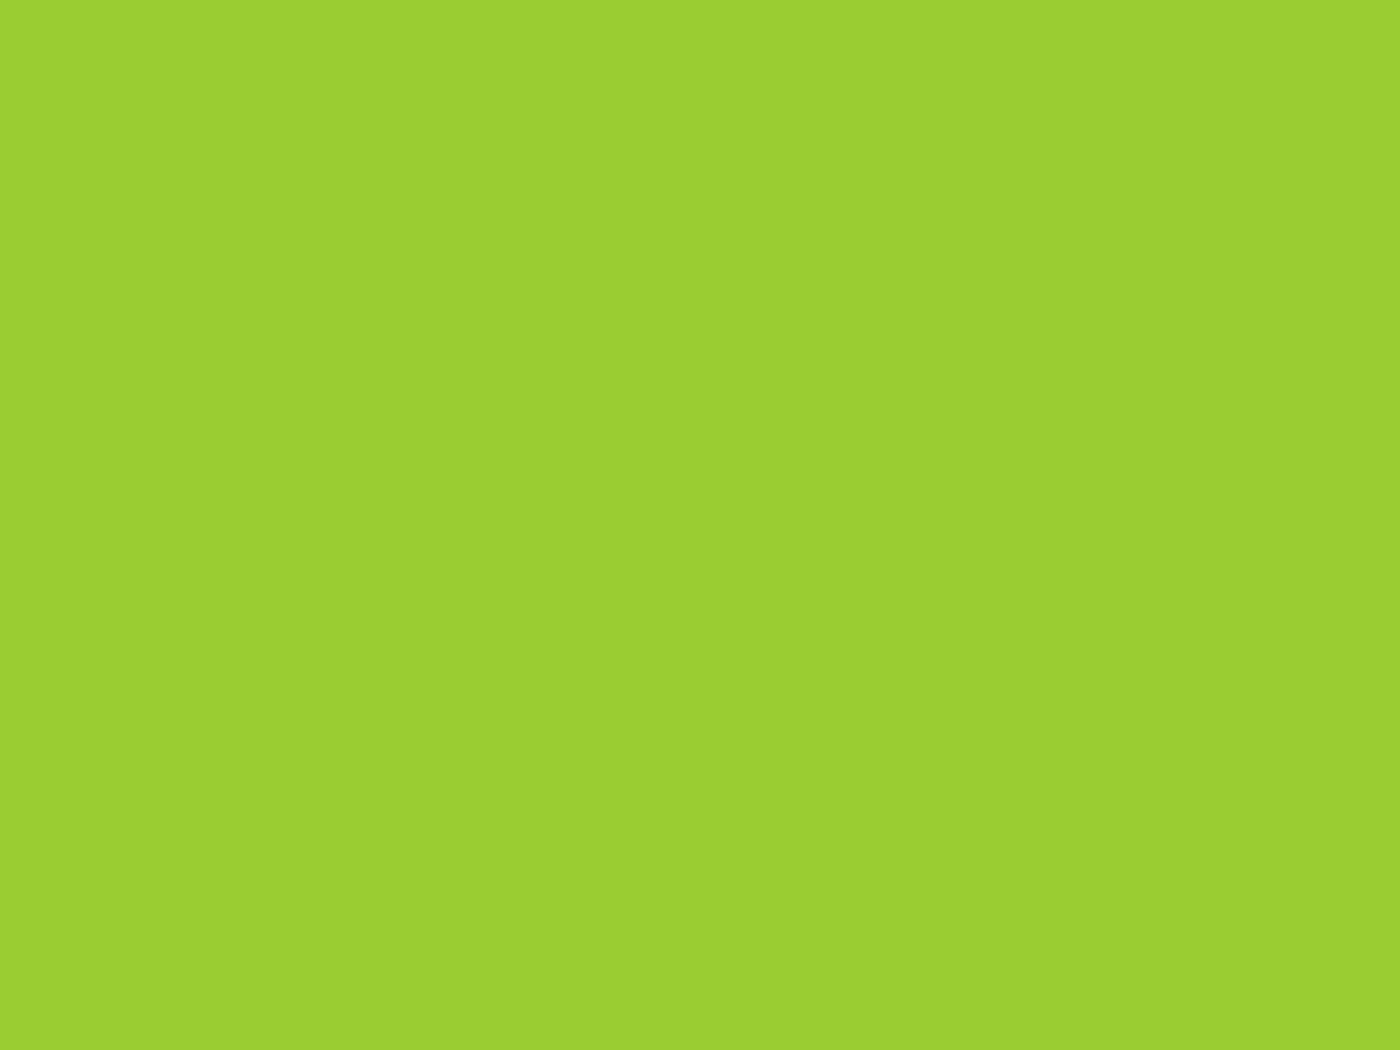 1400x1050 Yellow-green Solid Color Background